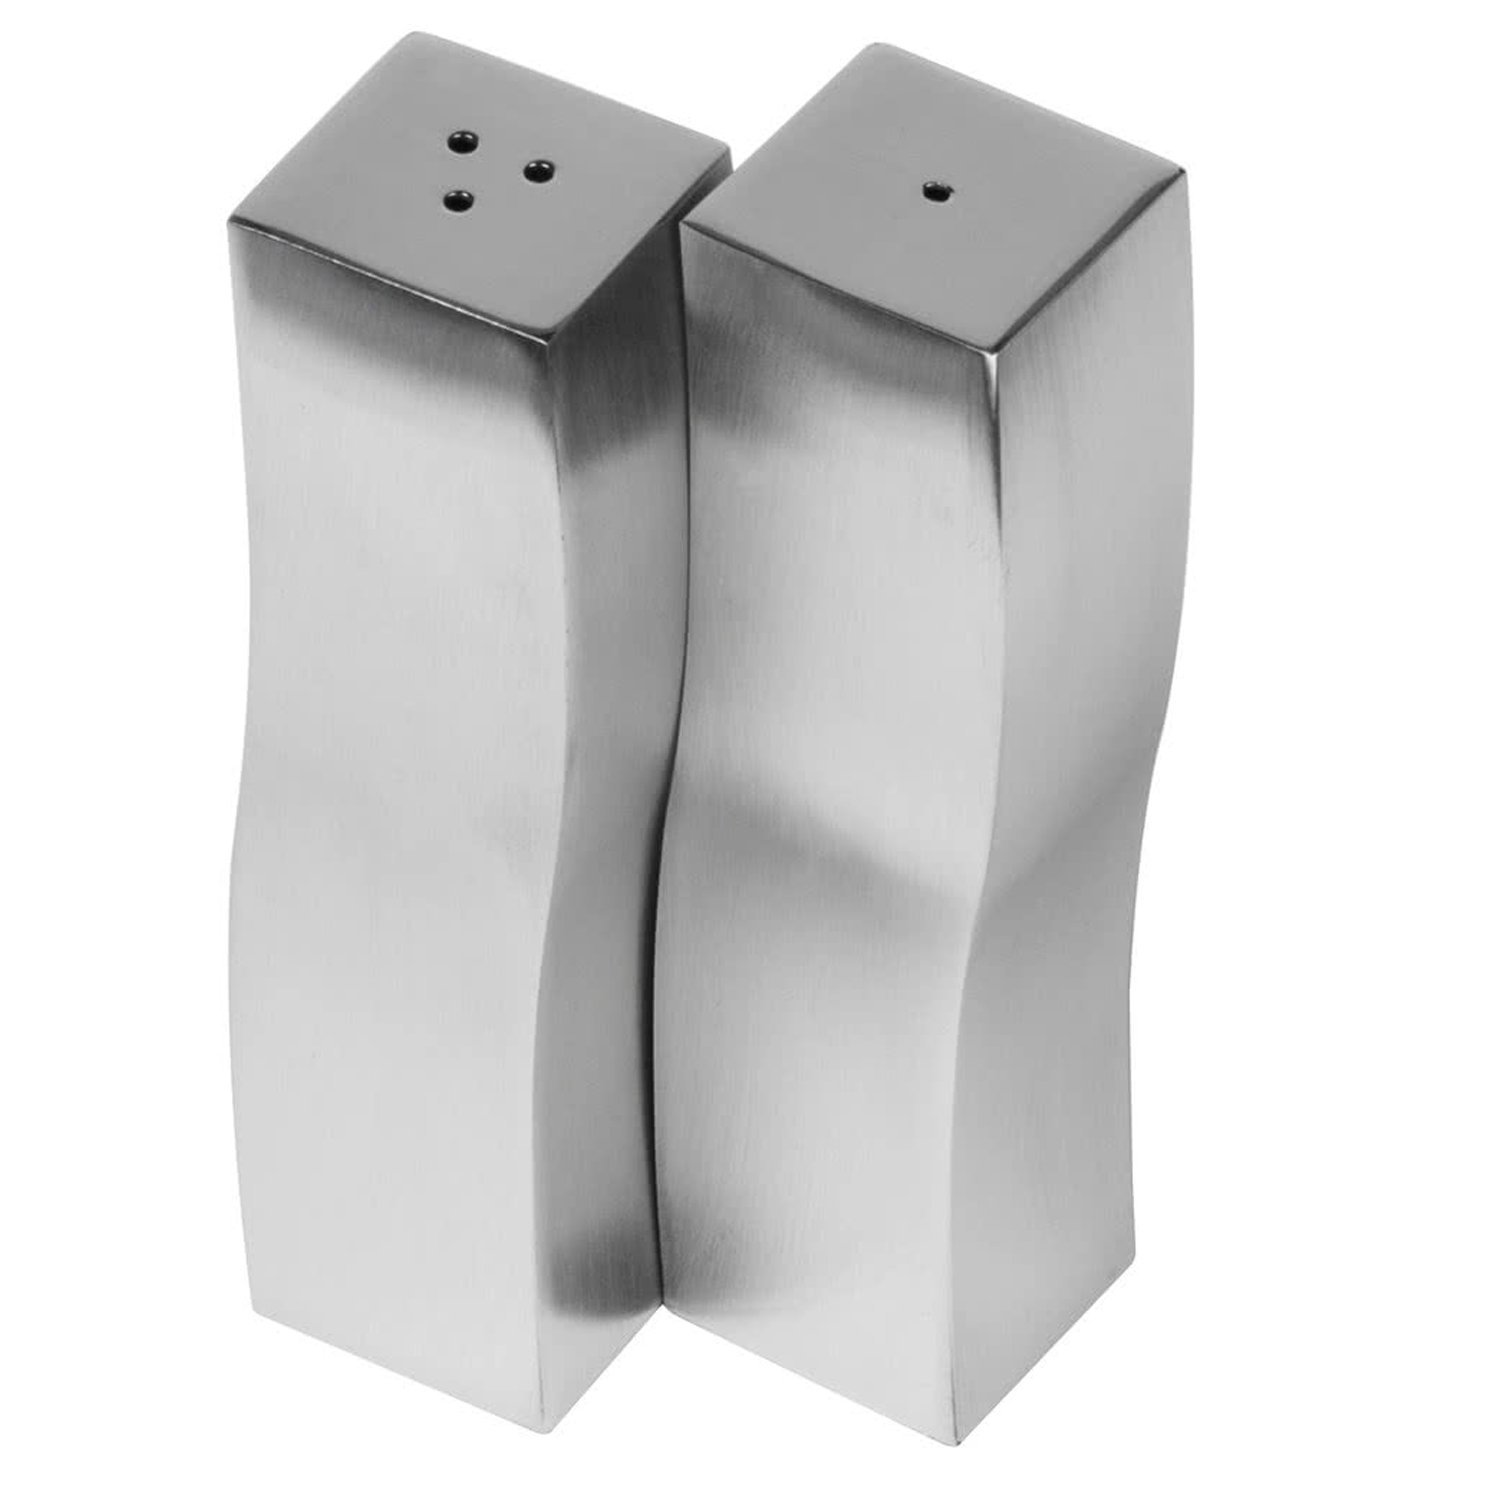 Modern Salt and Pepper Shakers Stainless Steel 4 .oz (Set of 2) Wavy Shape